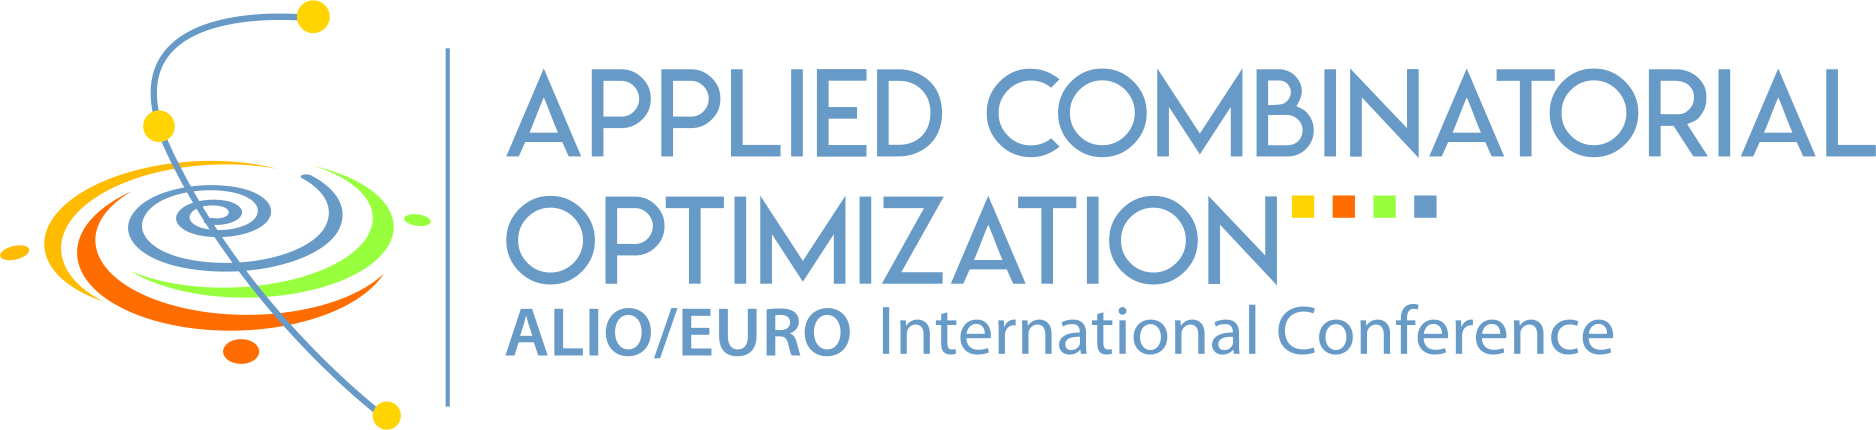 Logo Joint ALIO/EURO International Conference 2021-2022 on Applied Combinatorial Optimization